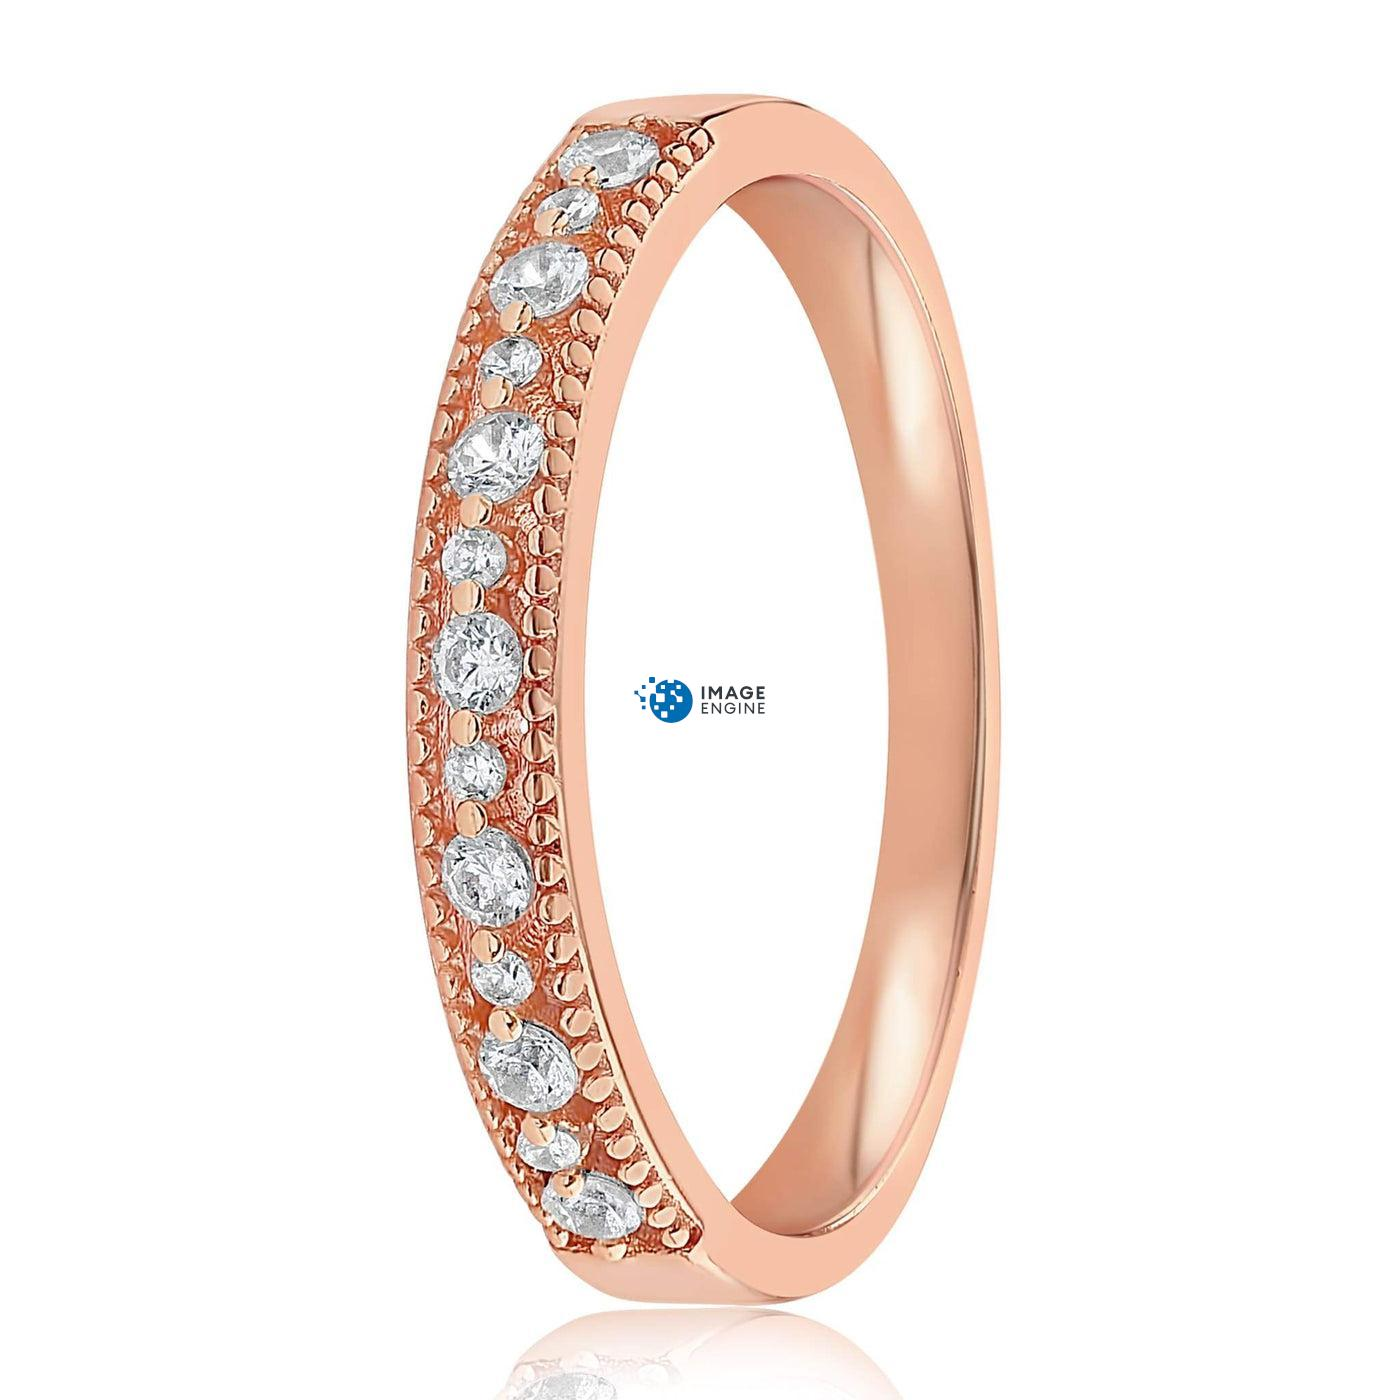 Joyce Layered Stack Ring - Front View Facing Down - 18K Rose Gold Vermeil